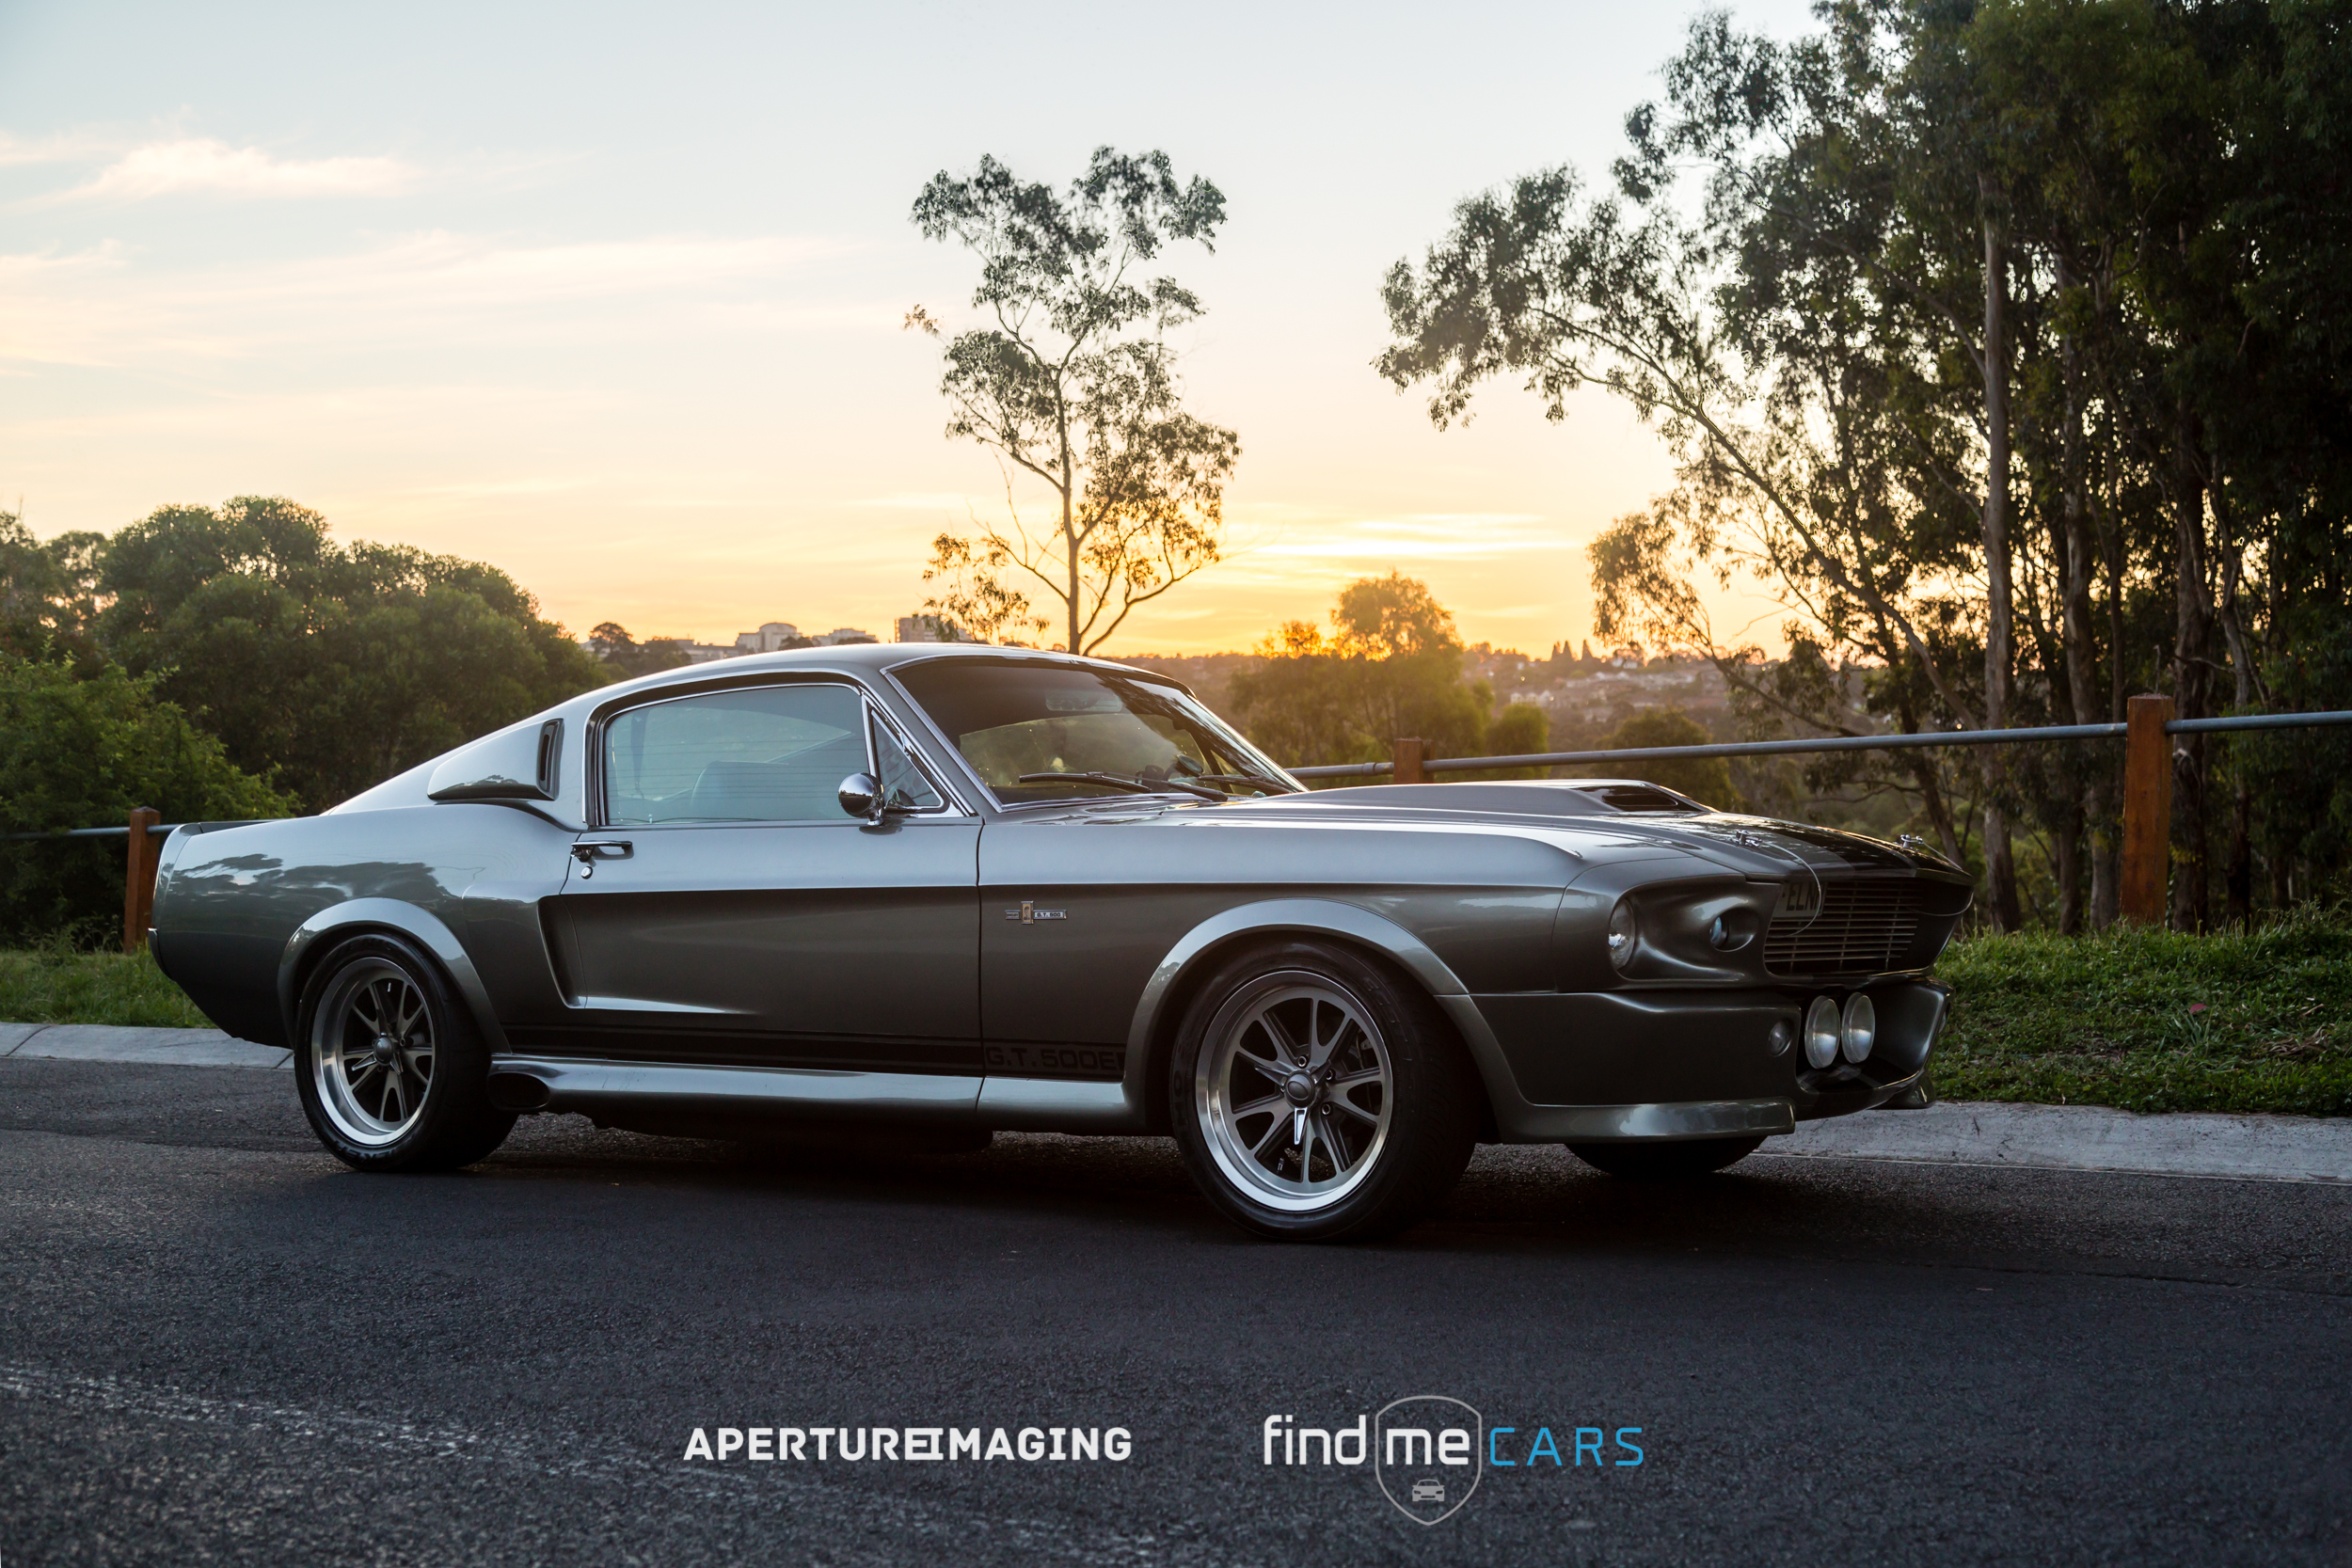 1968 ford mustang fastback movie correct eleanor find me cars. Black Bedroom Furniture Sets. Home Design Ideas